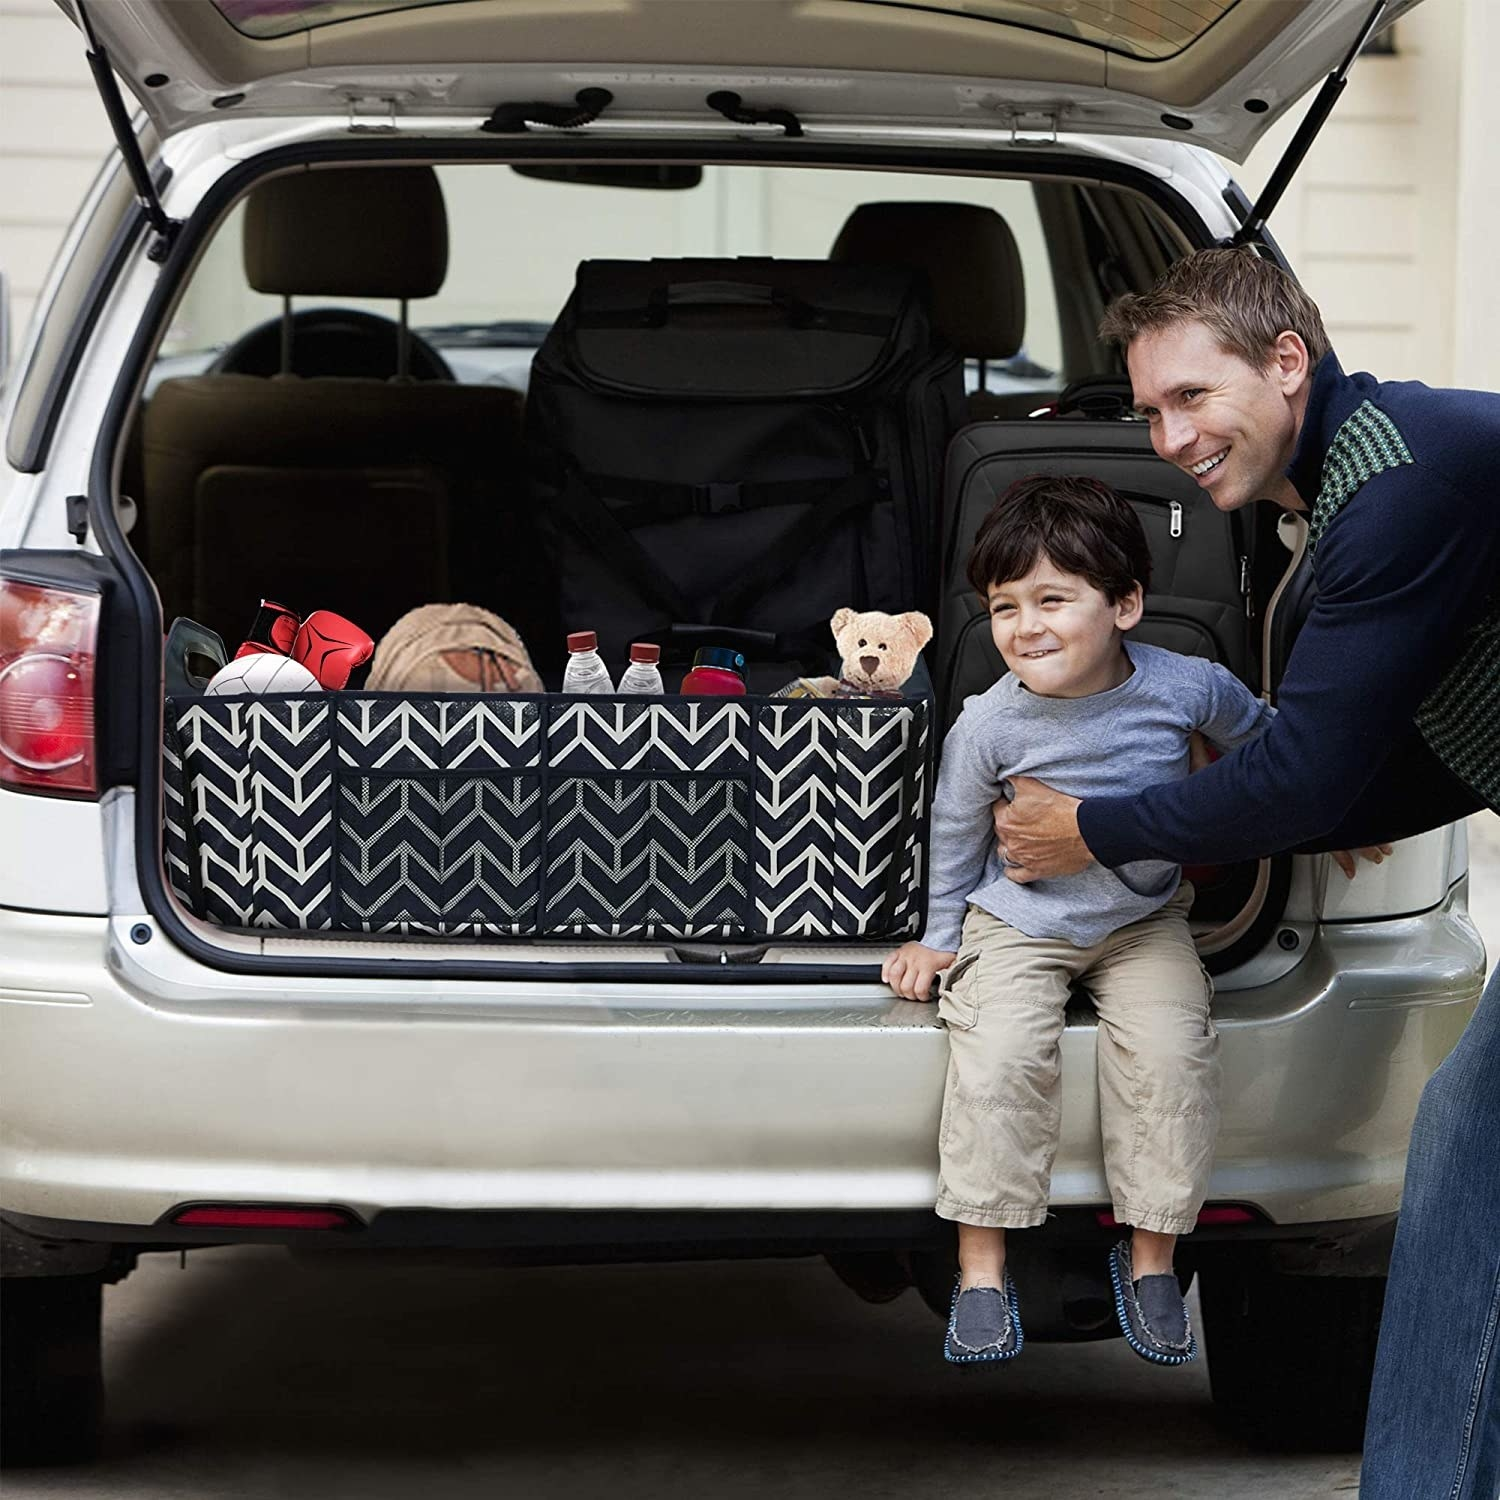 person holding child sitting on trunk with the trunk organizer